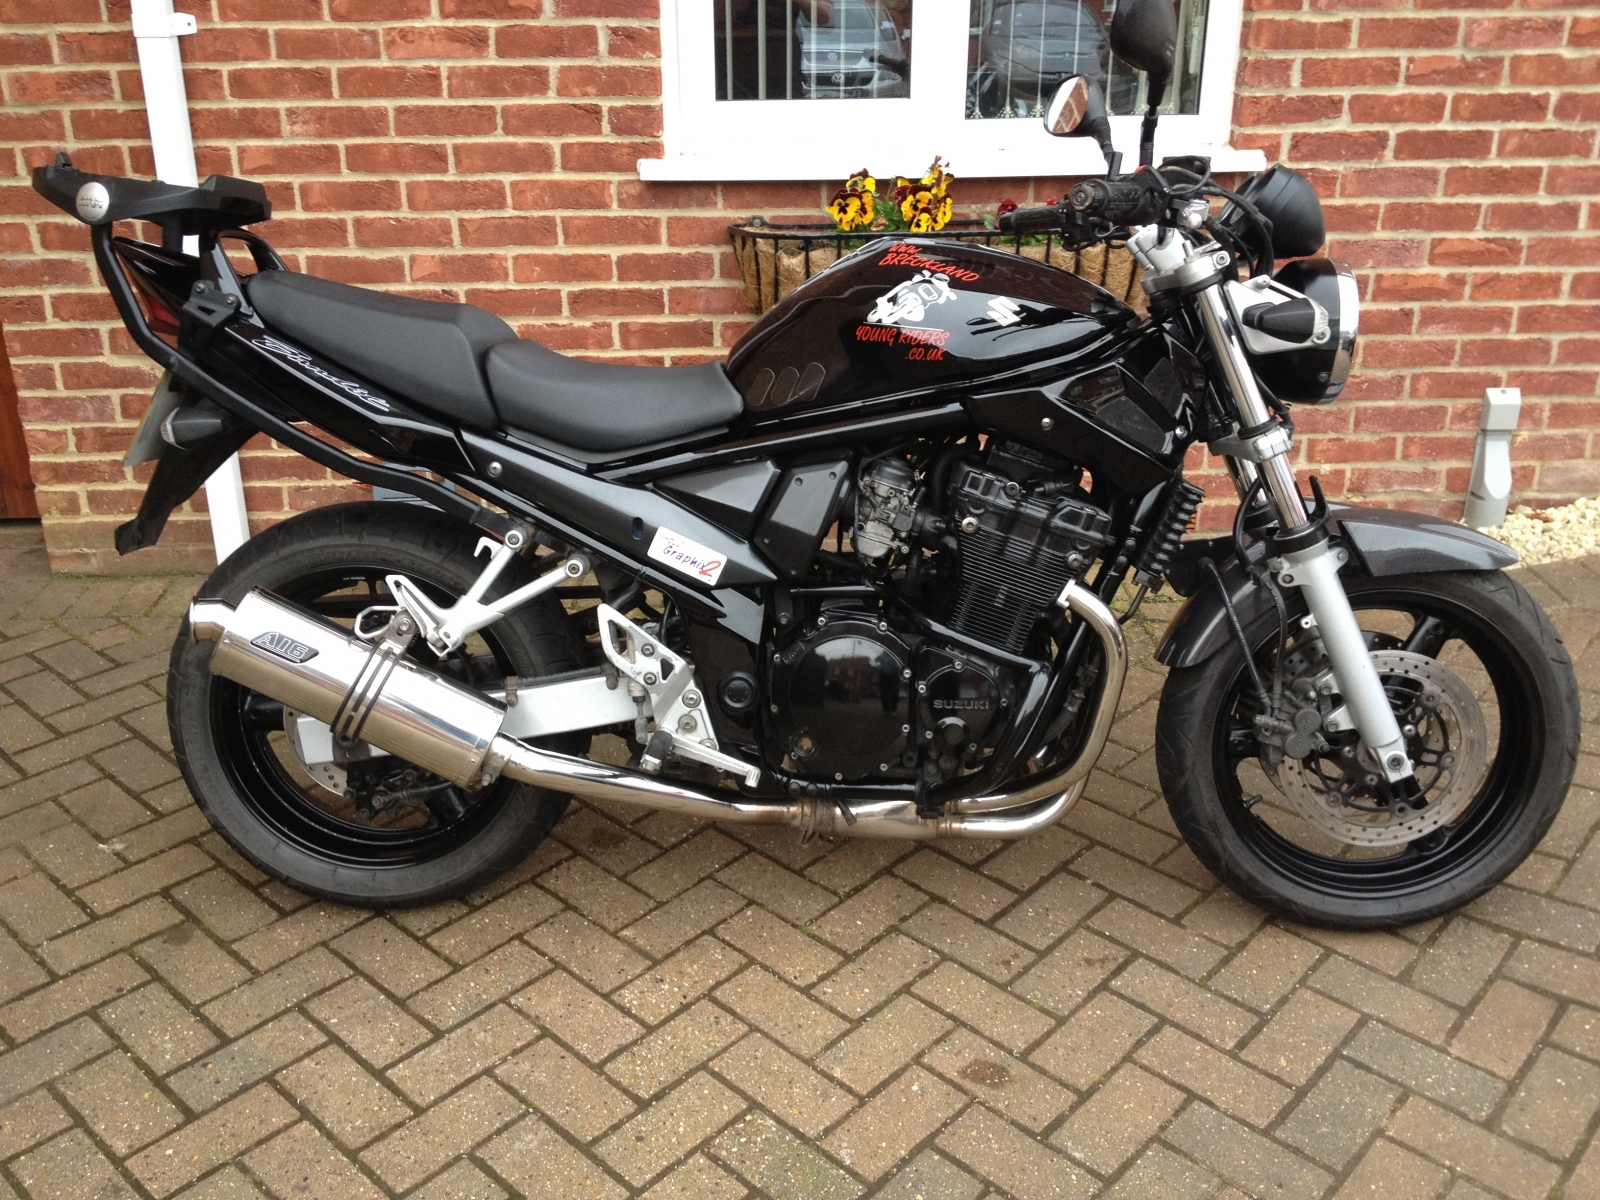 """Suzuki GSF 1200 Bandit <p>A16 Road Legal Stainless Exhaust with Traditional Spout</p><br /><a href=""""https://a16roadnracesupplies.co.uk/product/a16-suzuki-exhausts/"""">Buy now!</a>"""